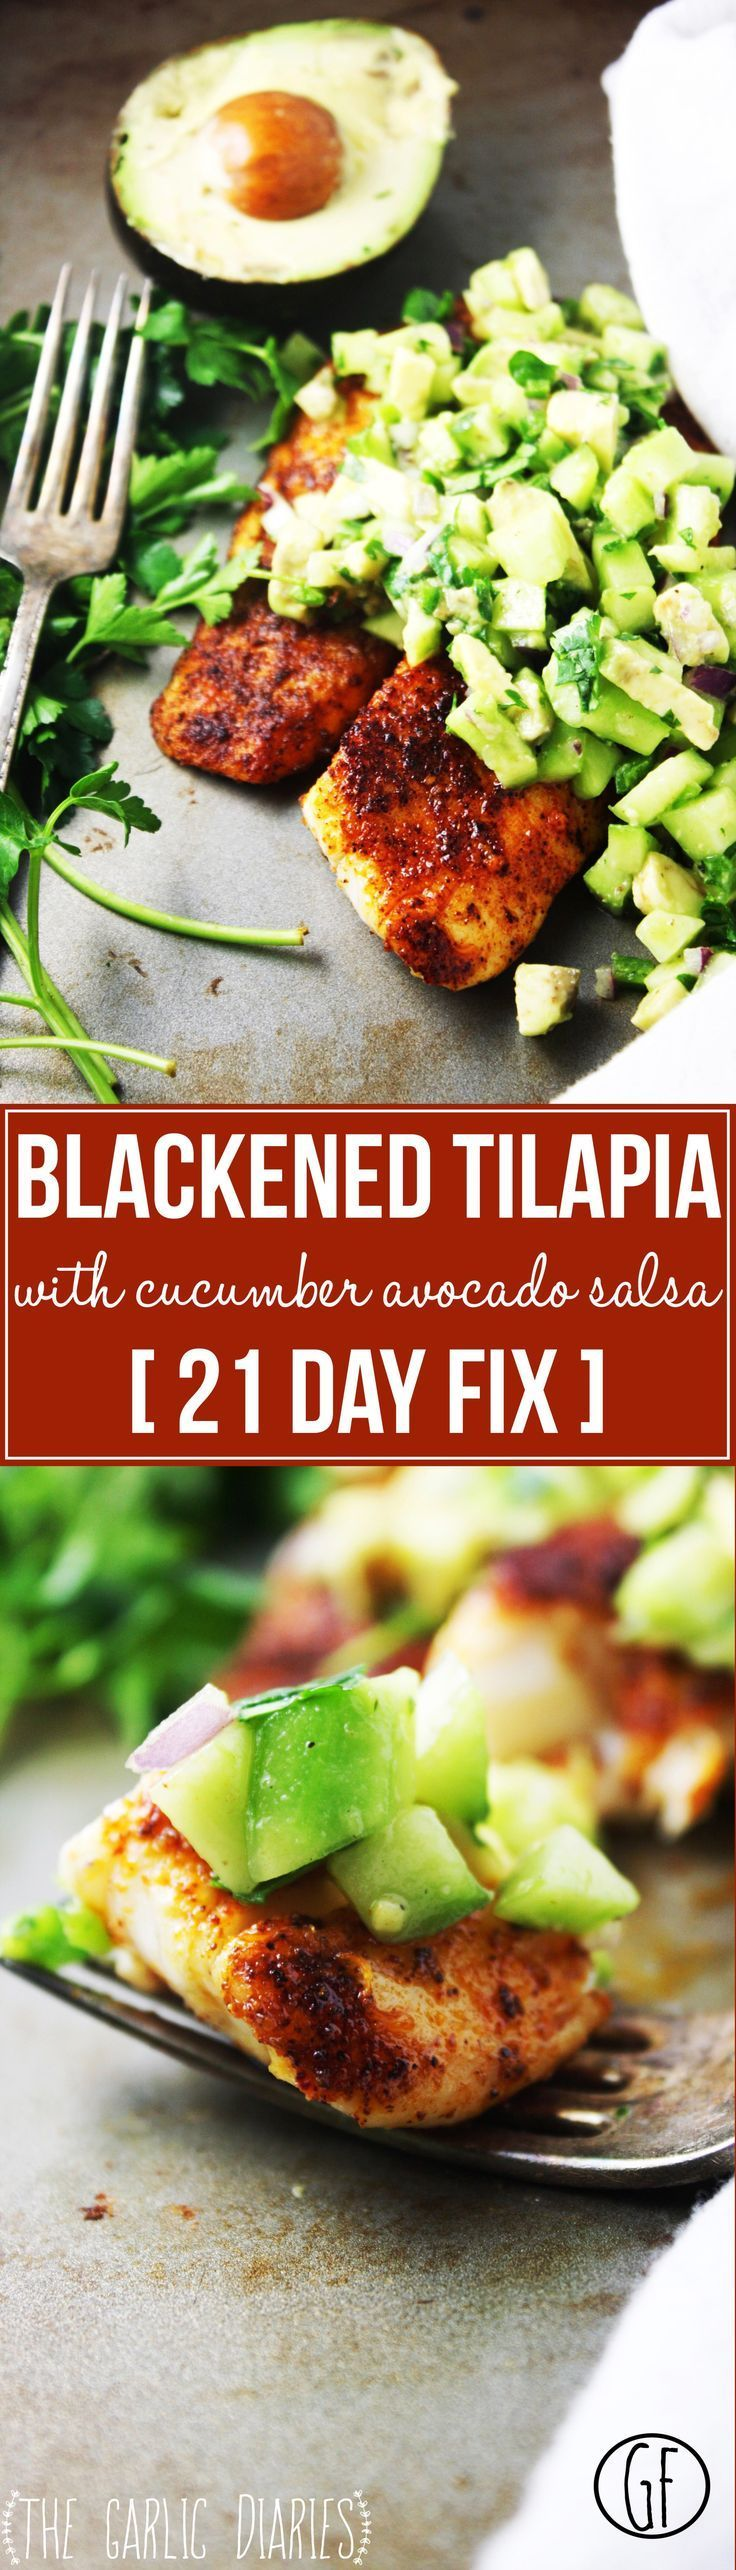 Blackened Tilapia with Cucumber Avocado Salsa [21 Day Fix] - This healthy and easy recipe is one of the most fresh, flavorful, and mouthwatering dishes you could possibly make! You will be in love! (It uses 1 red, 1 green, and 1 blue container in 21 Day Fix.) TheGarlicDiaries